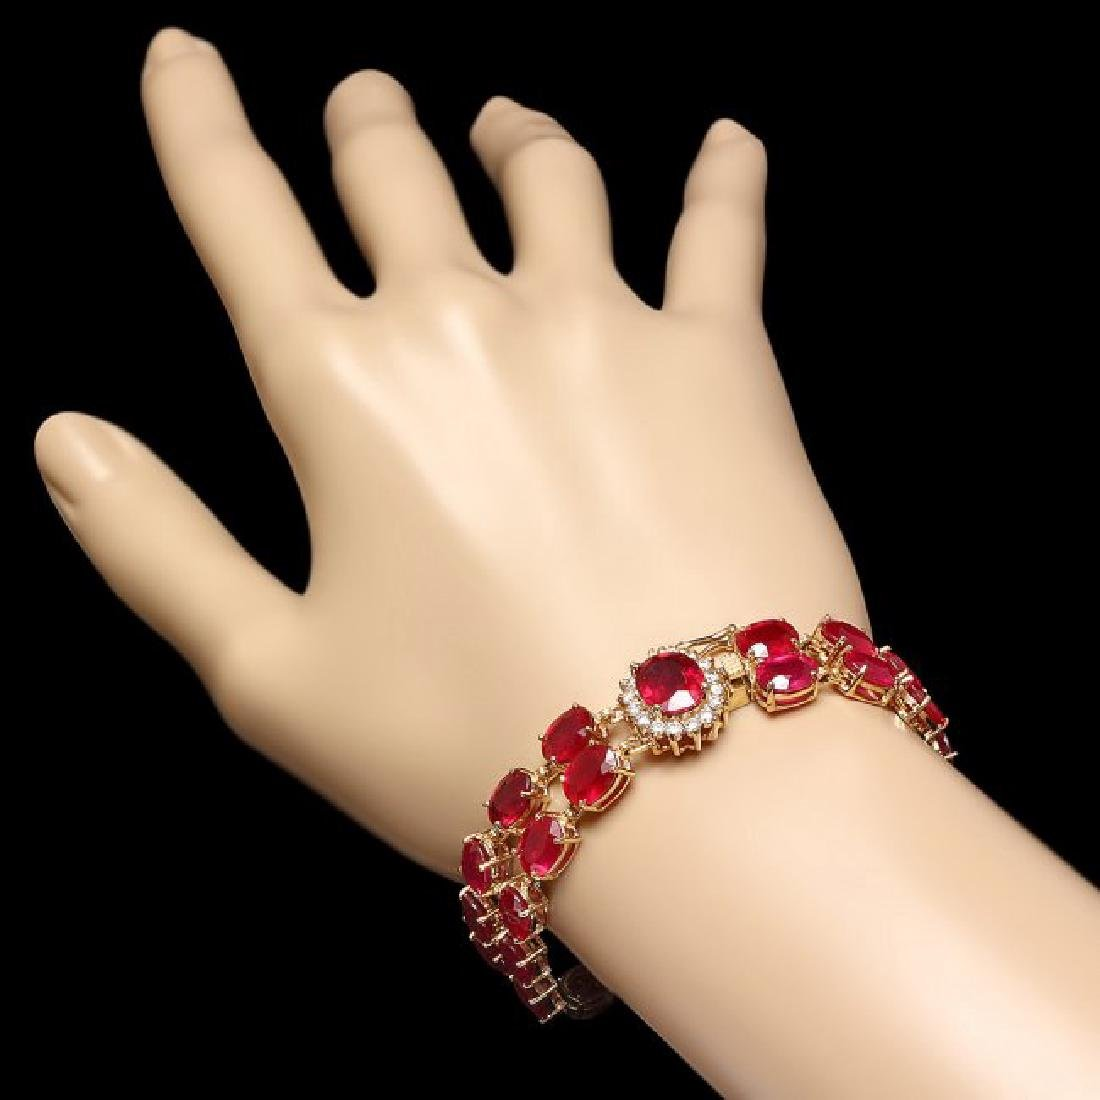 14k Yellow Gold 58ct Ruby 0.65ct Diamond Bracelet - 3